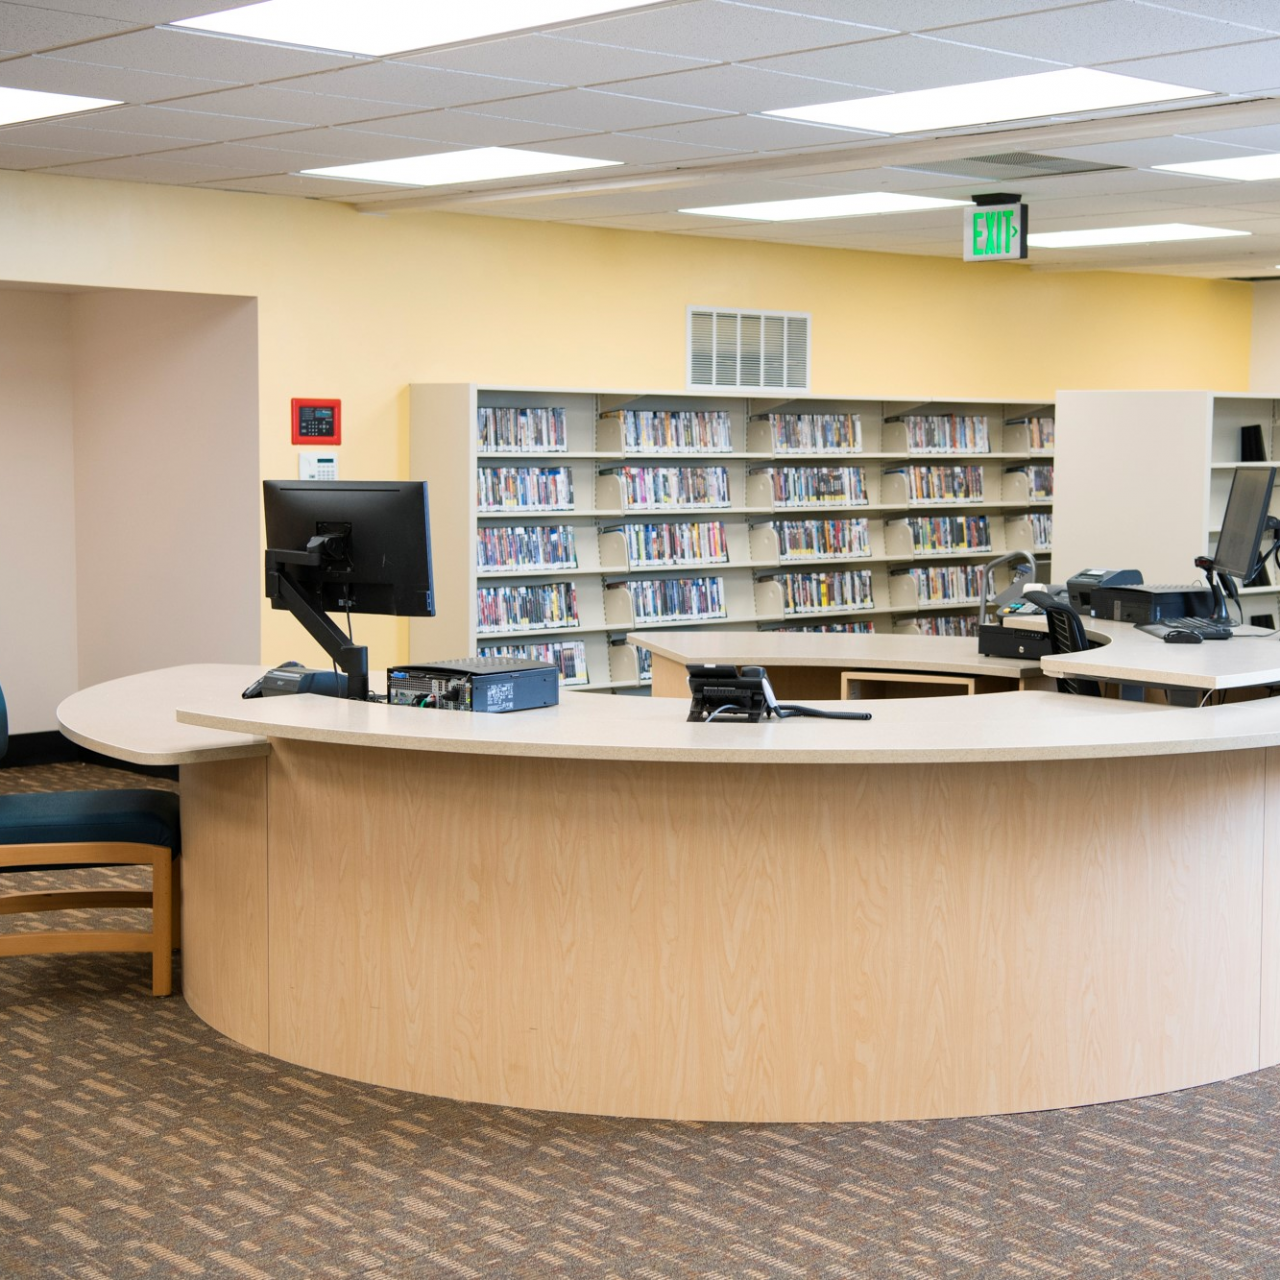 round service desk at a library